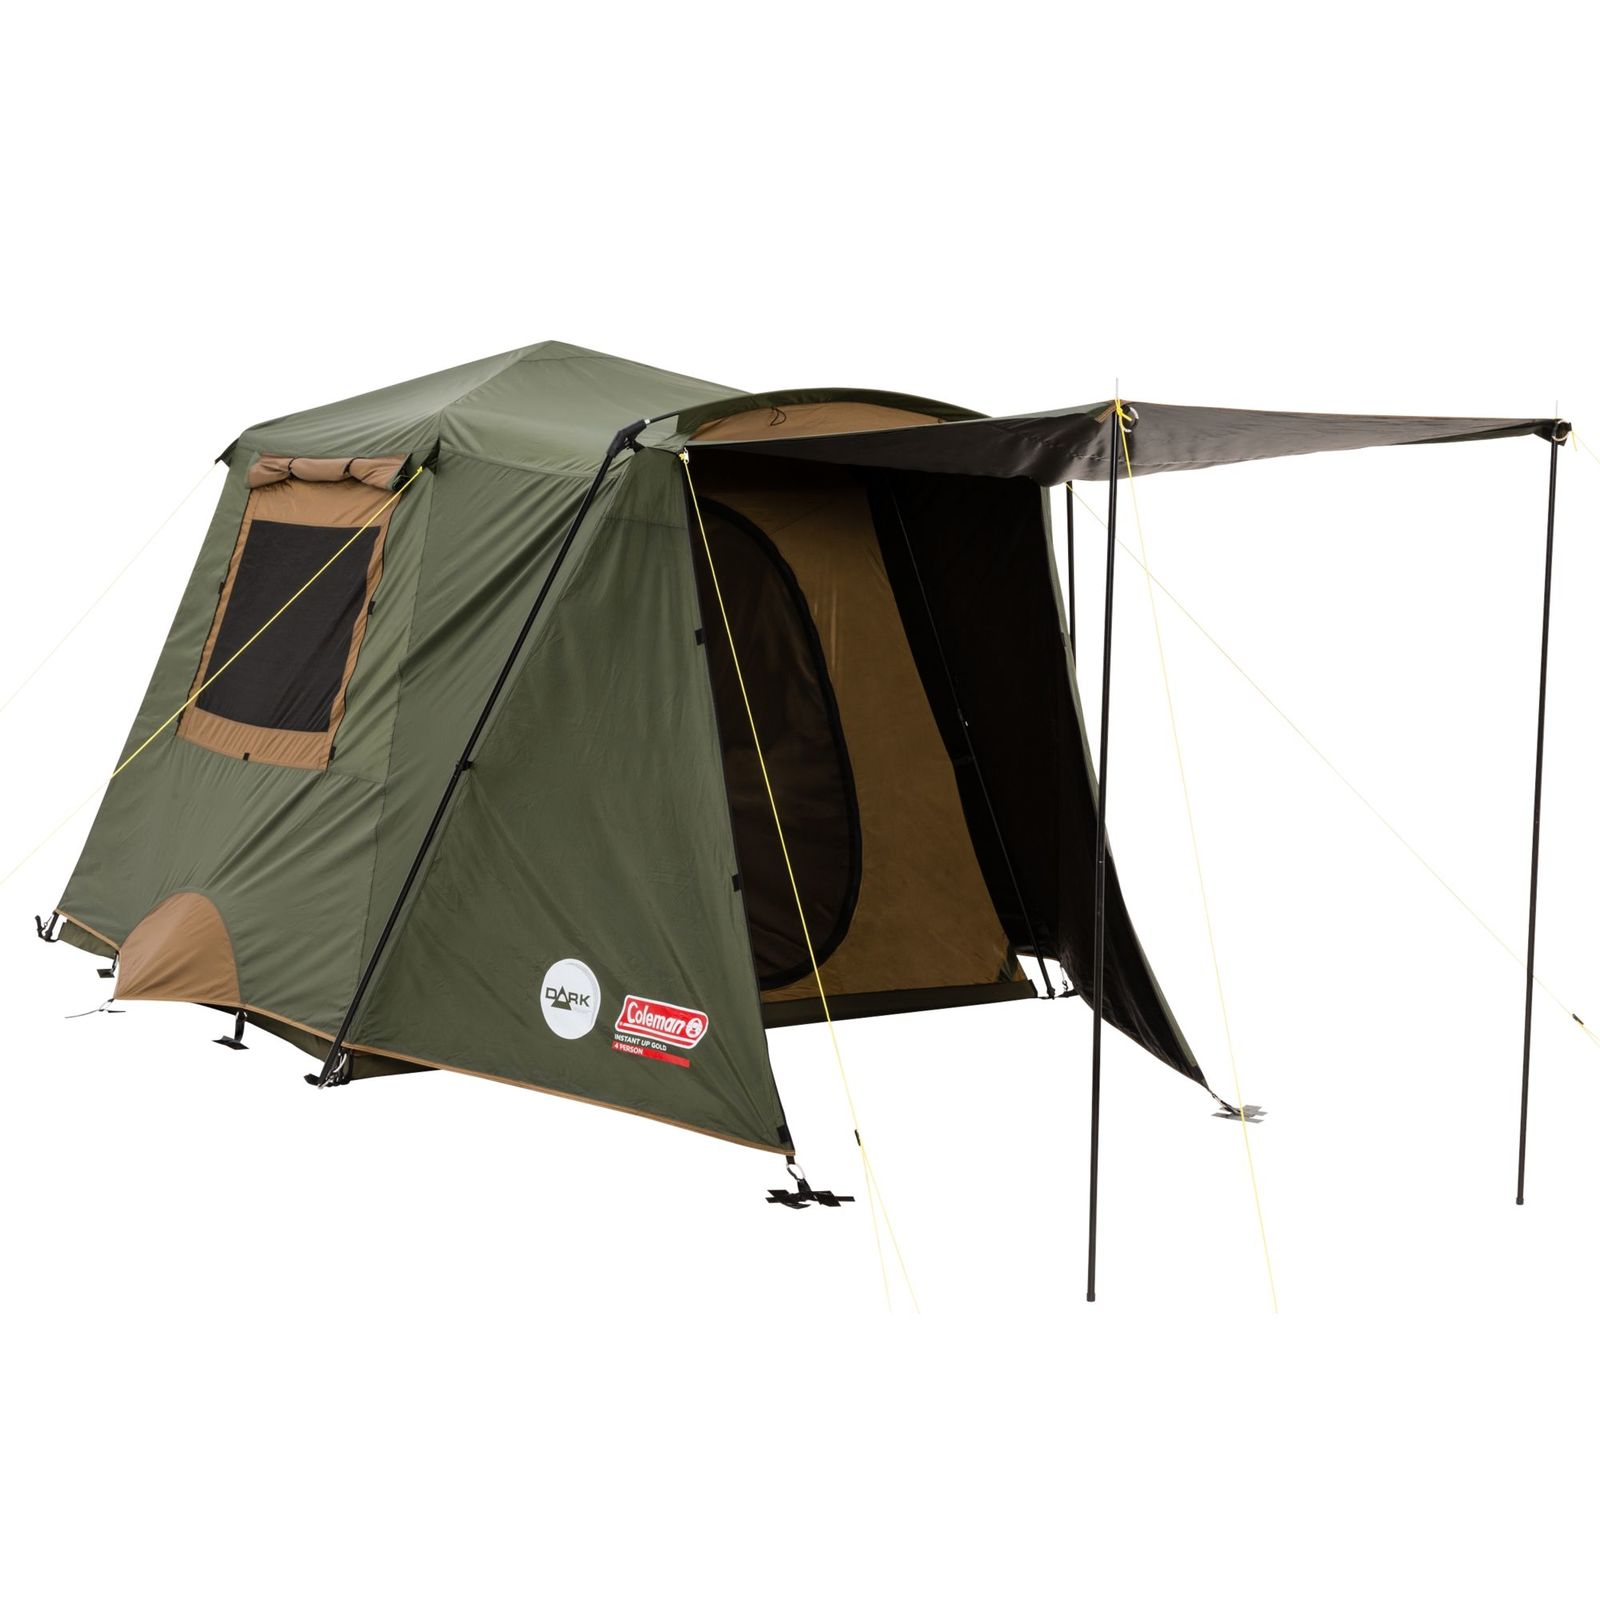 COleman instant tent 4 person 1